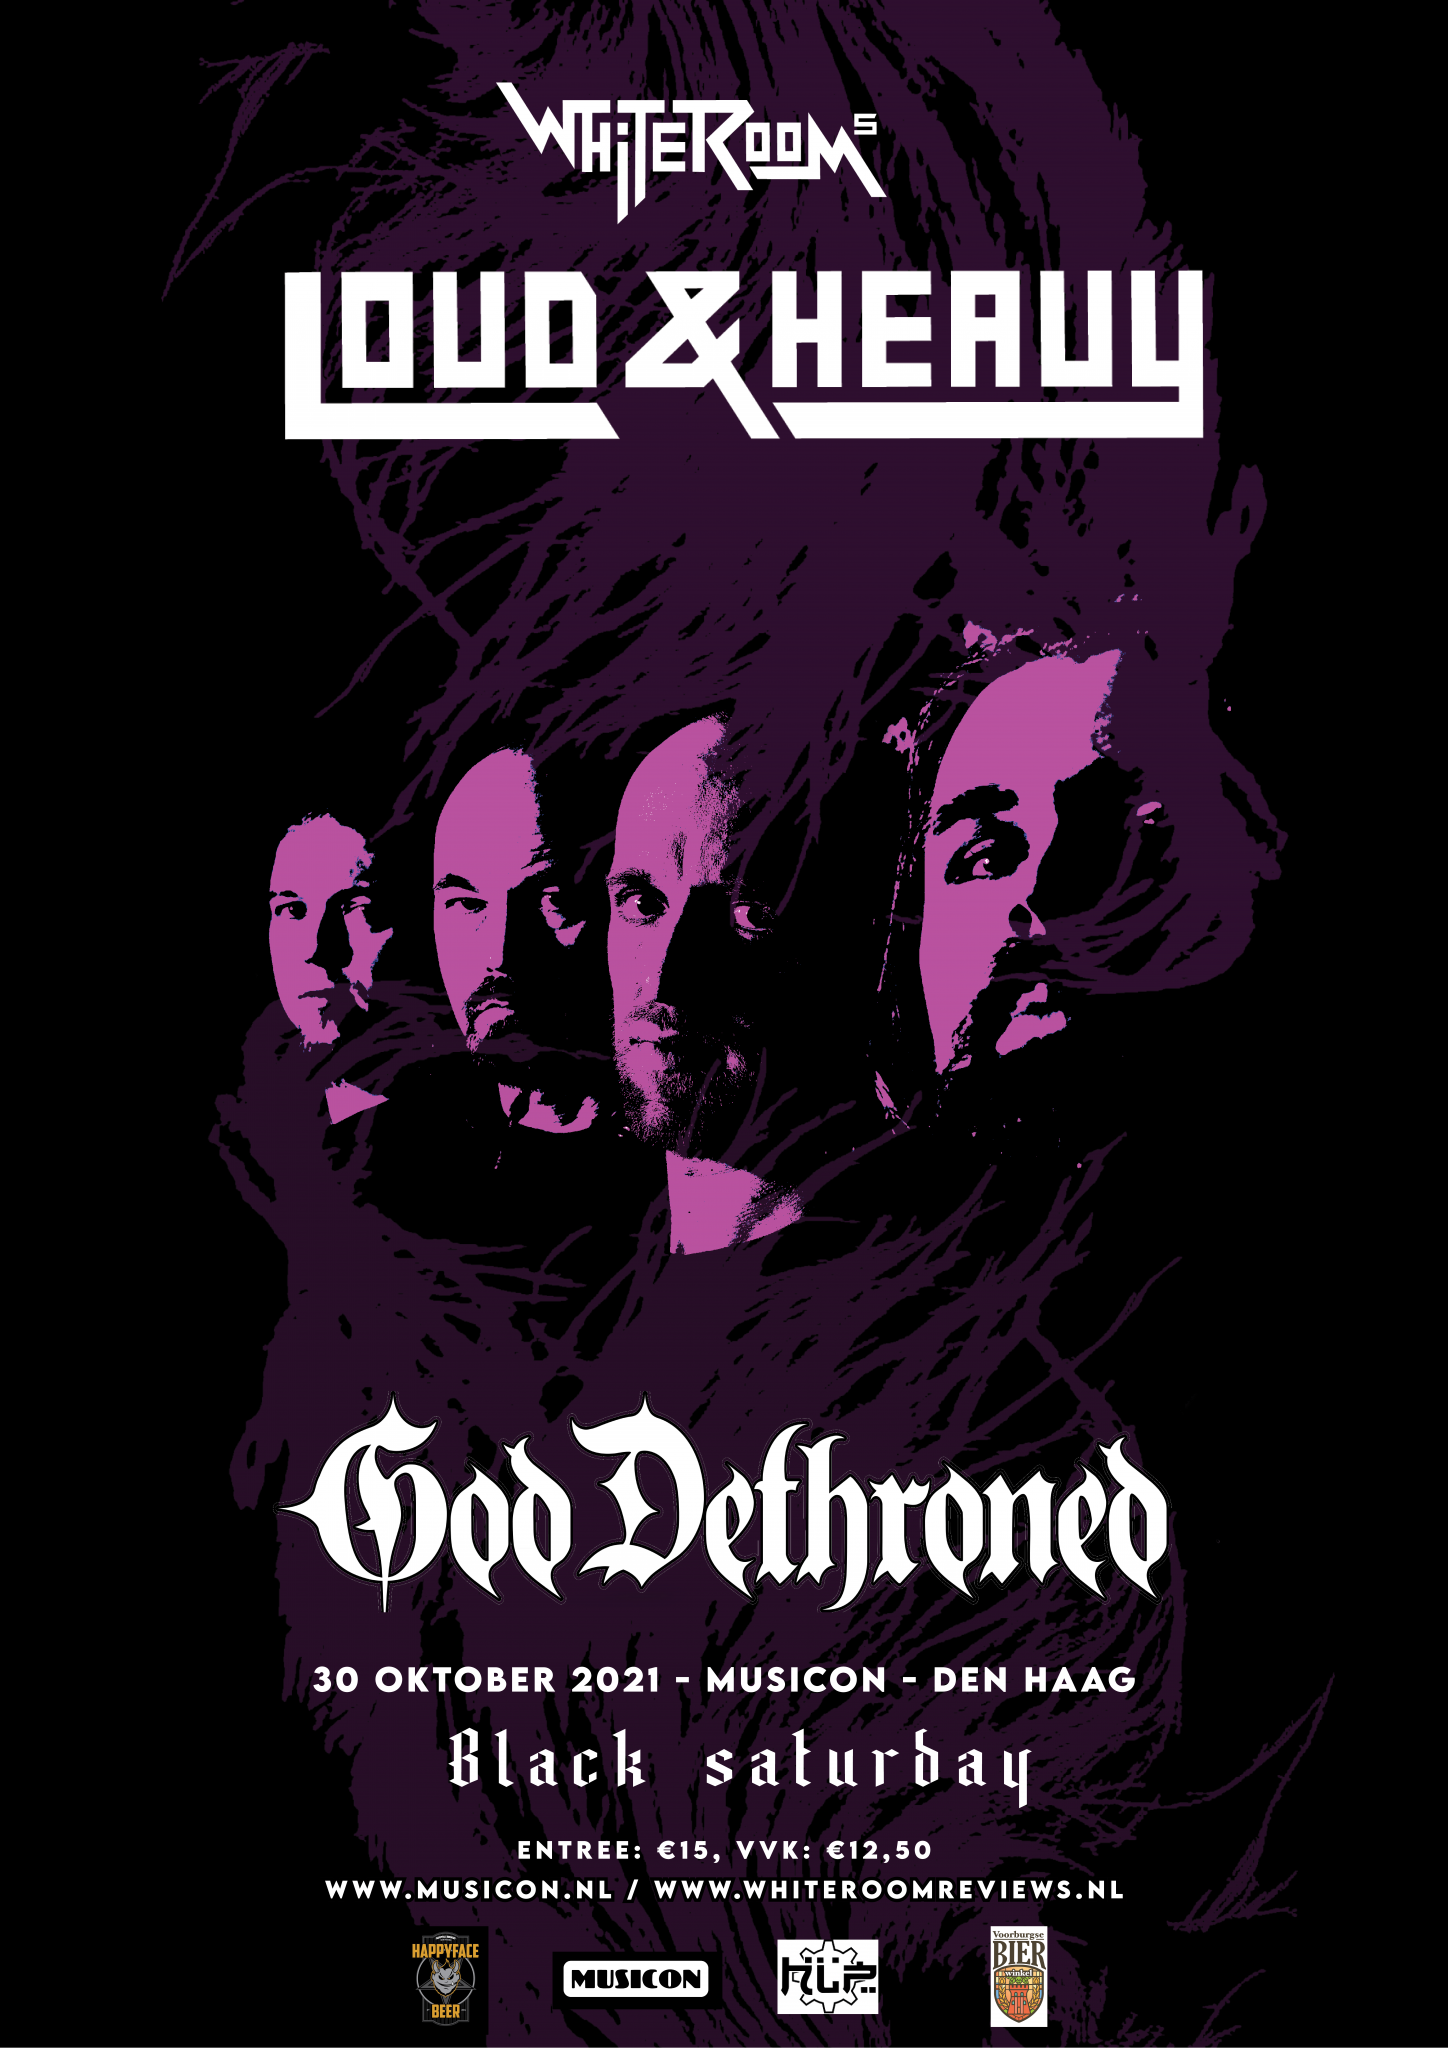 White Room's Loud & Heavy main posterss2